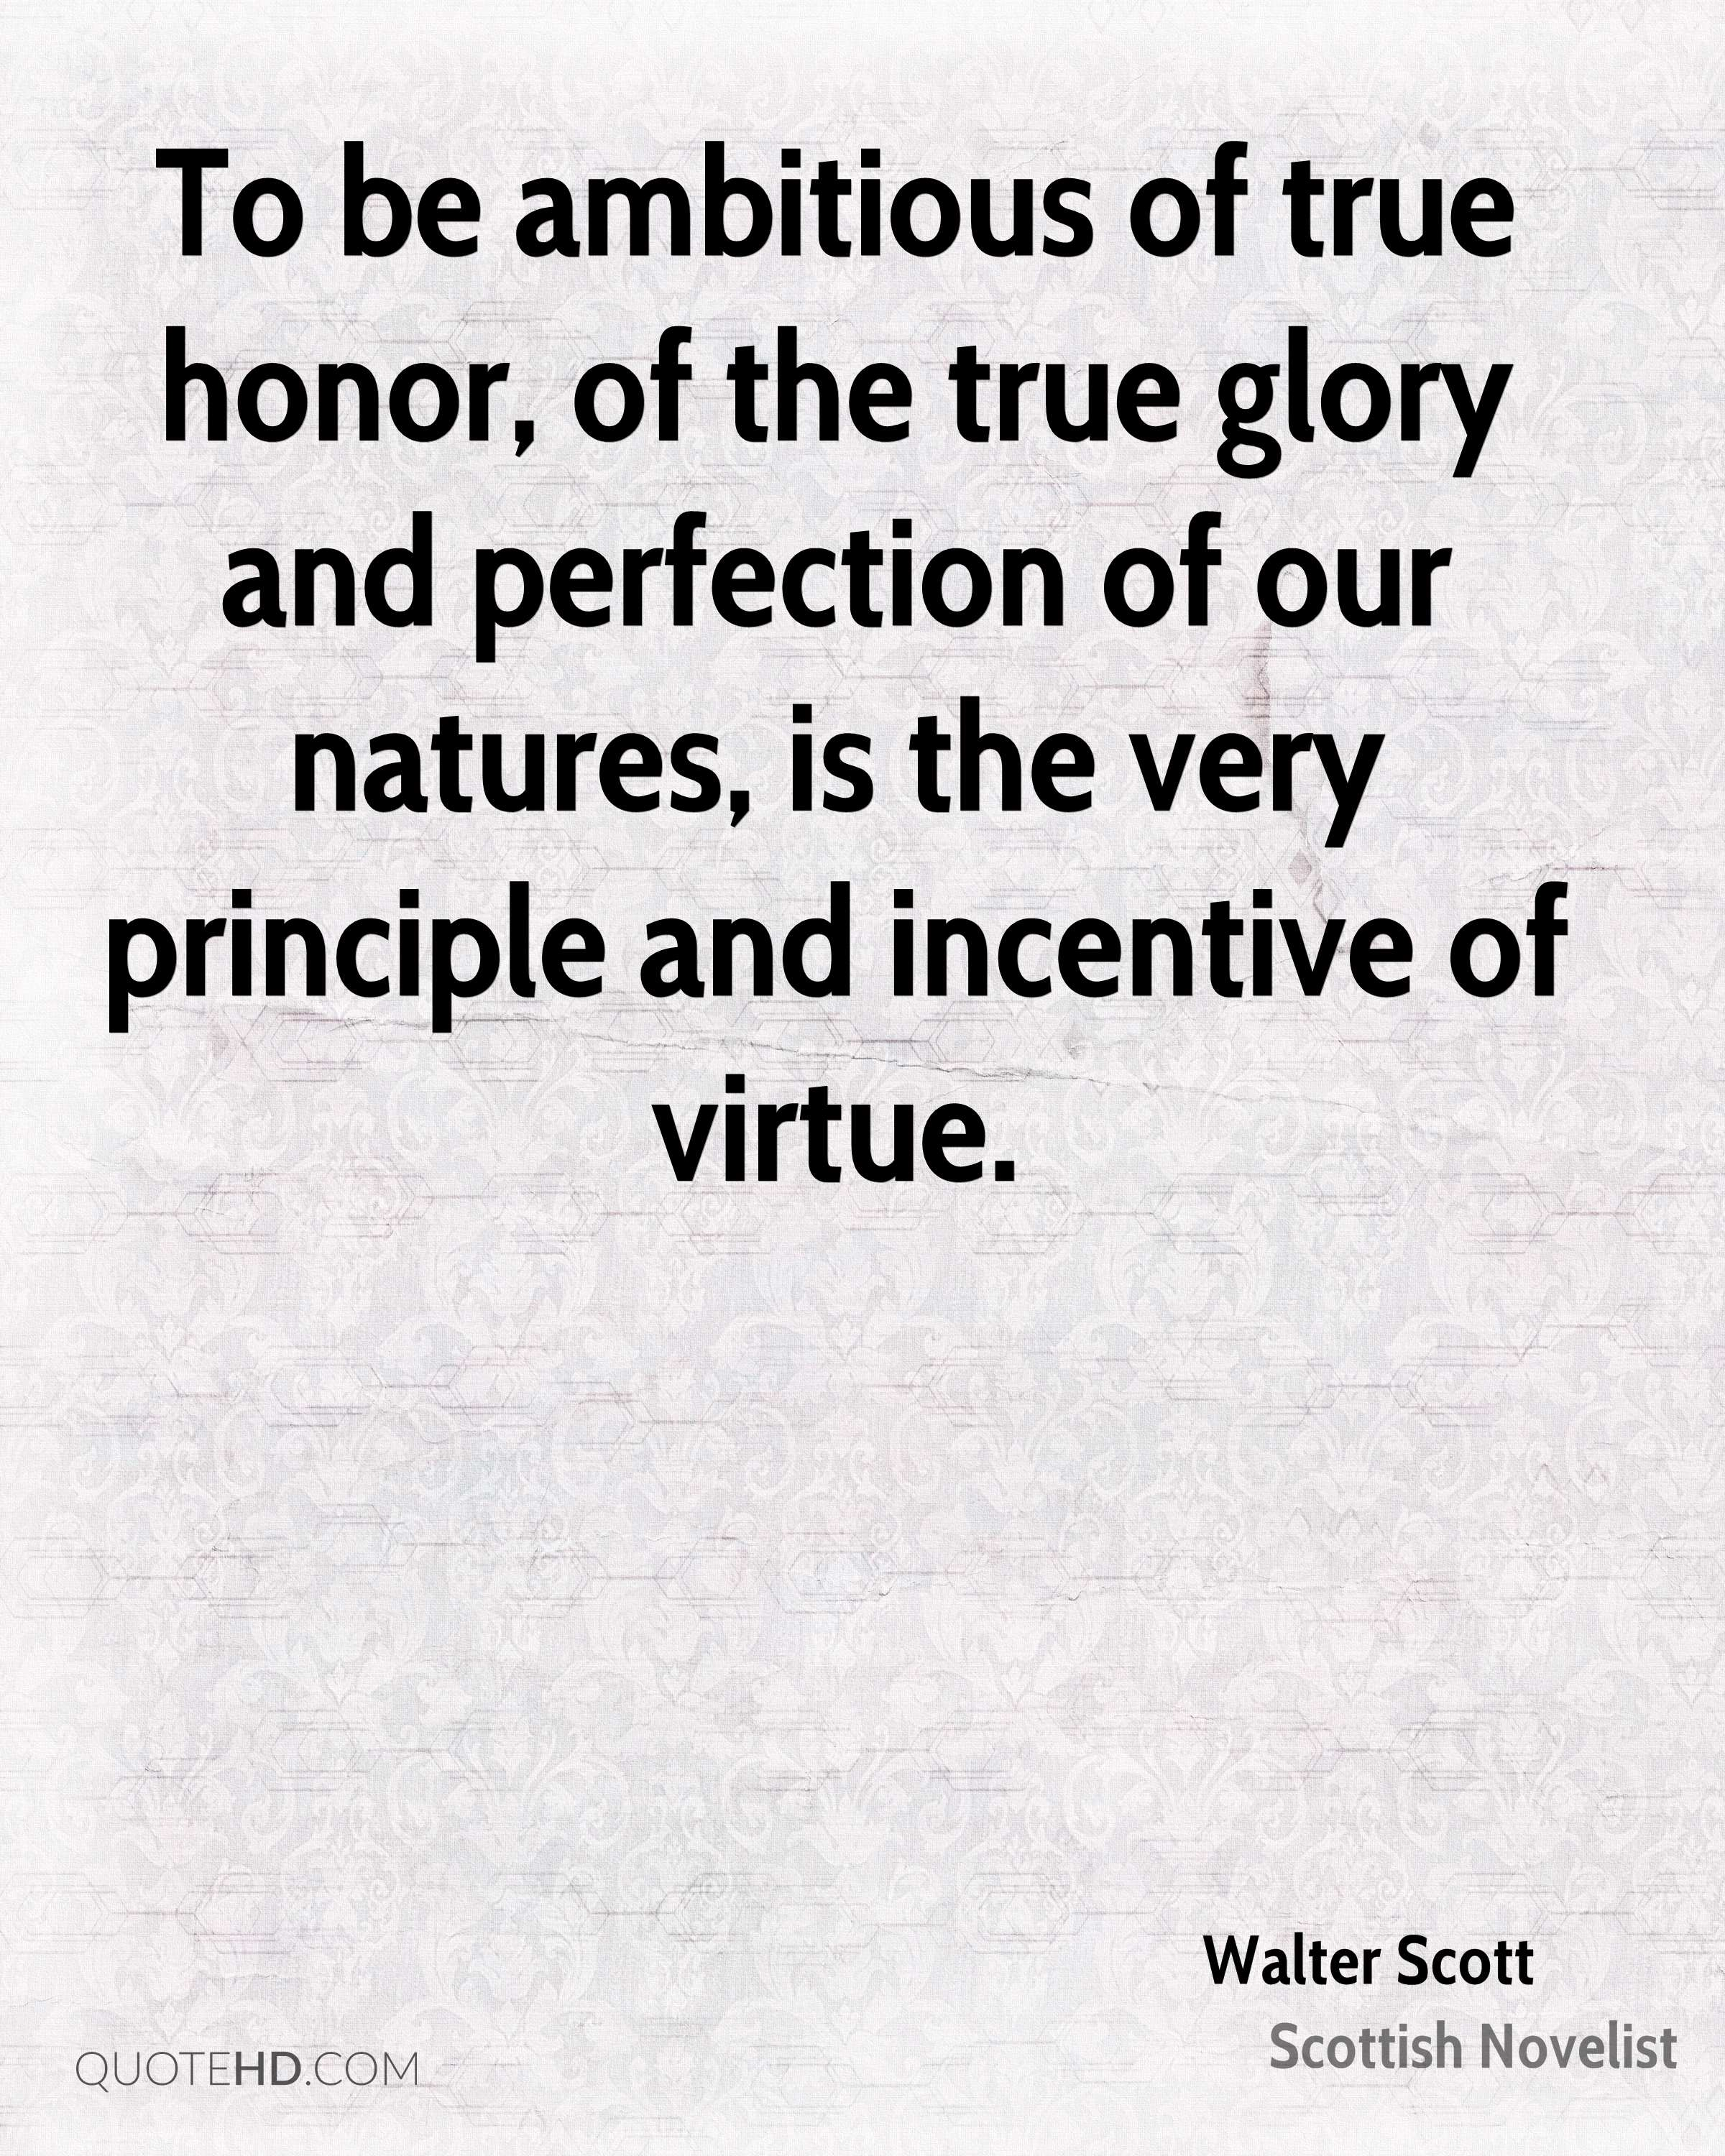 To be ambitious of true honor, of the true glory and perfection of our natures, is the very principle and incentive of virtue.